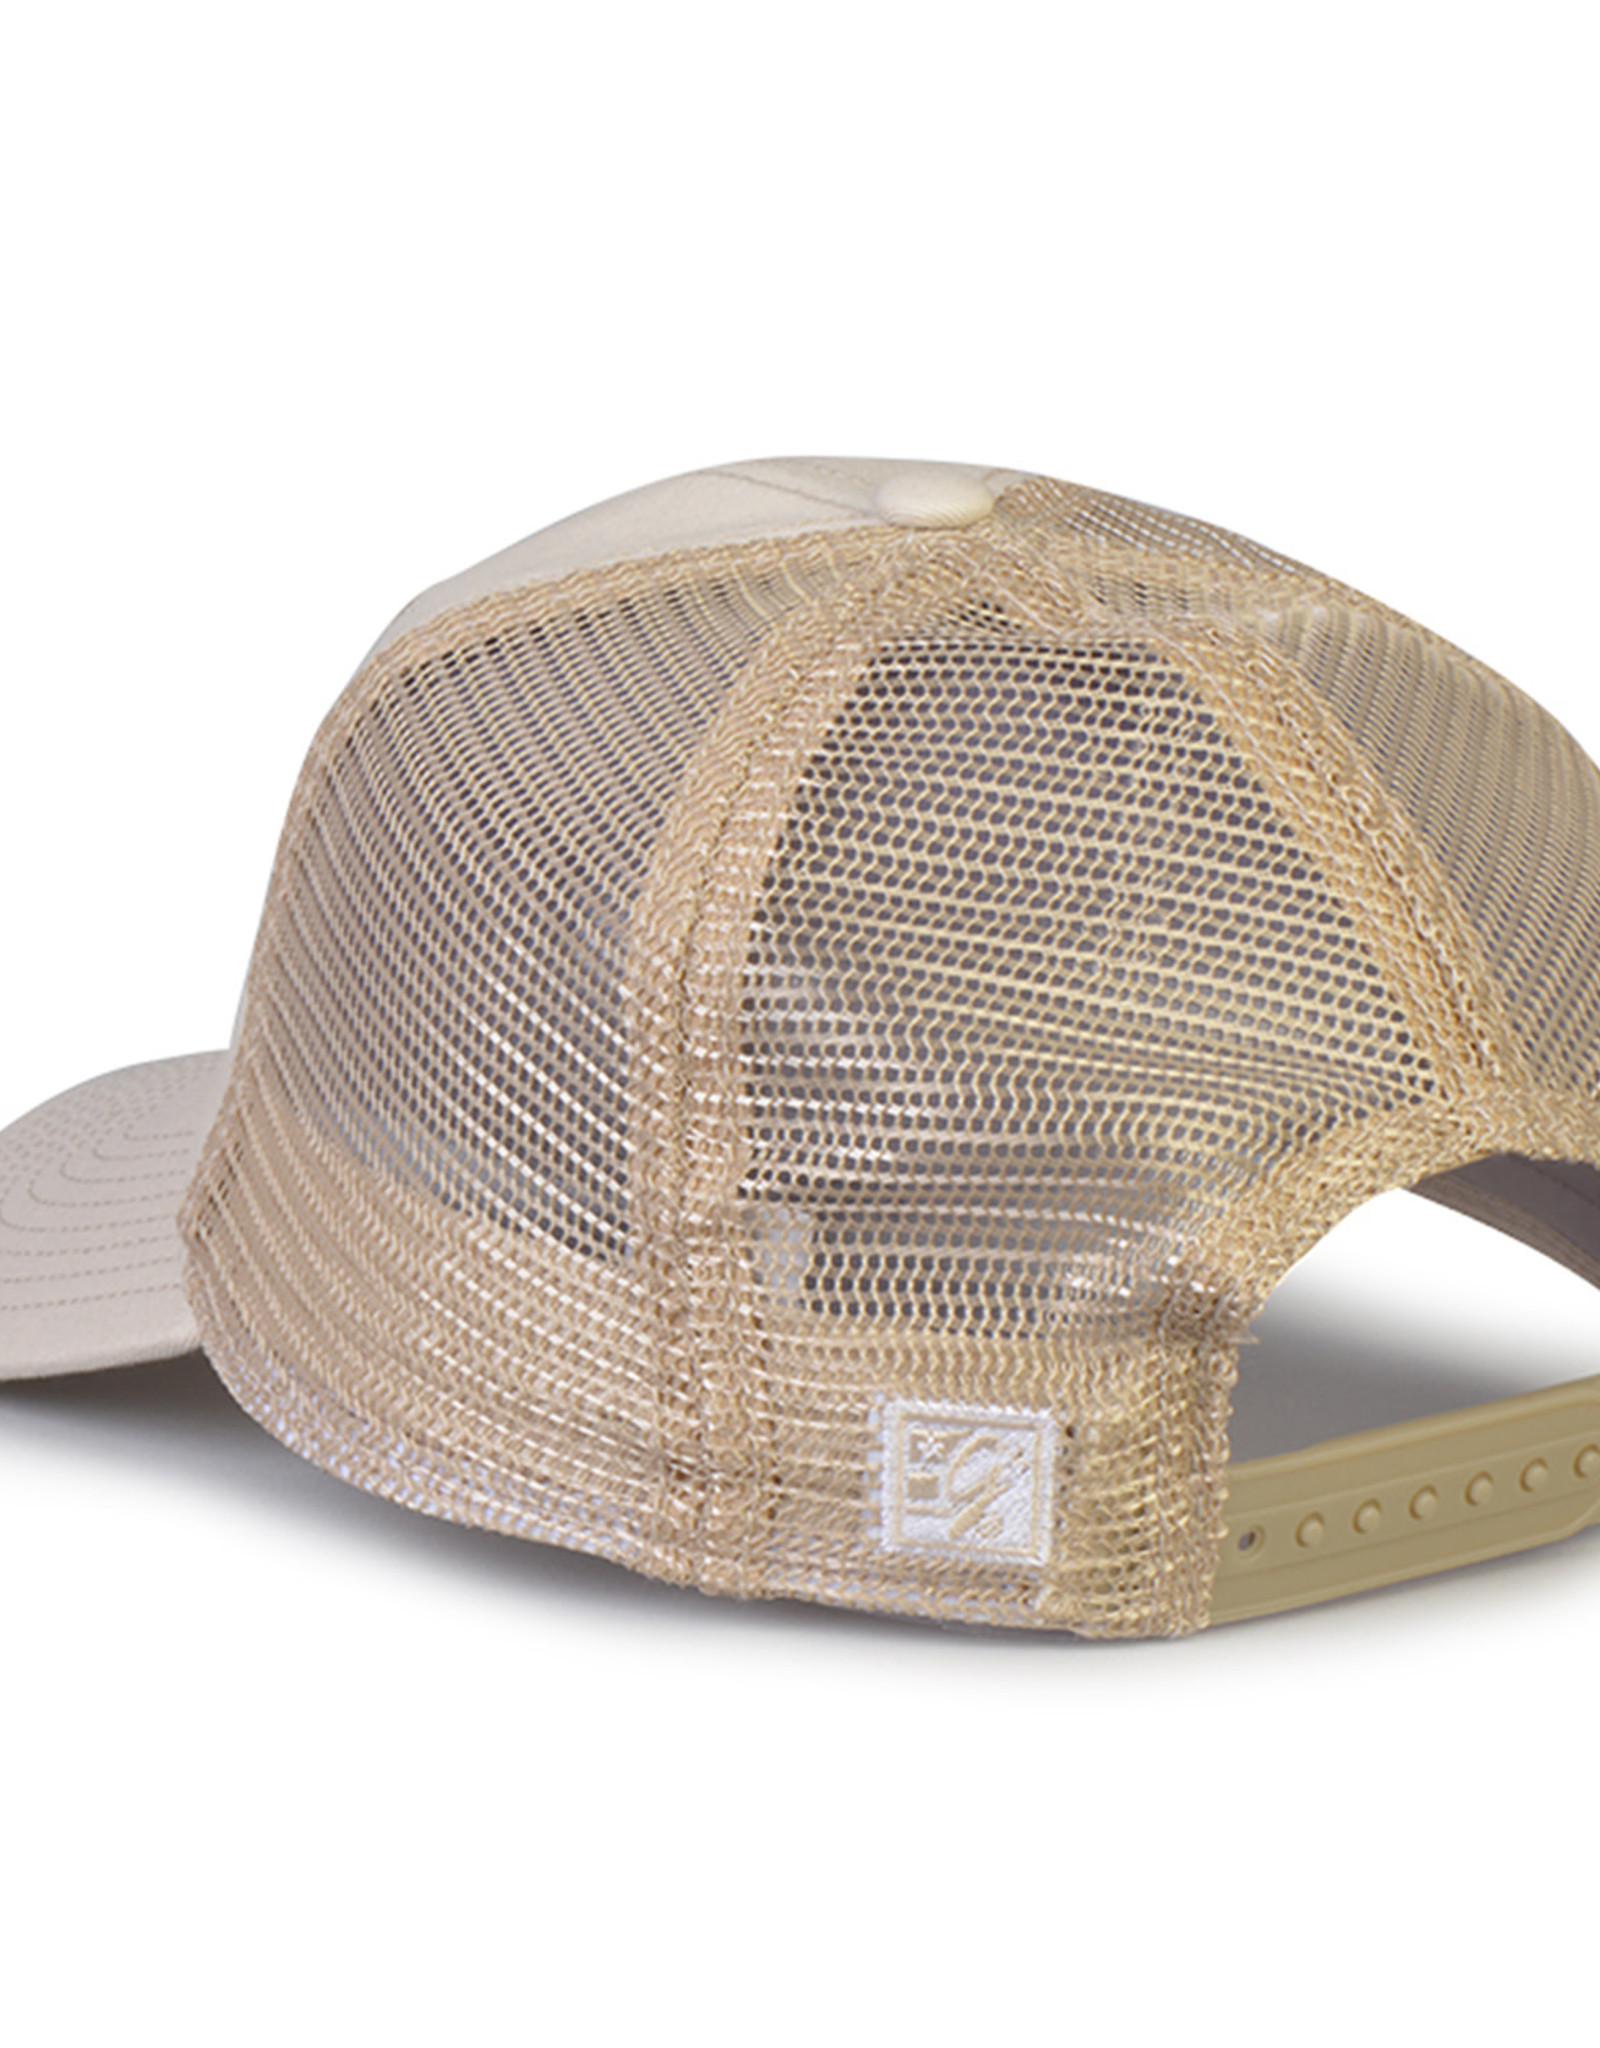 The Game Tan New Flag Unstructured Adjustable Mesh Trucker Hat